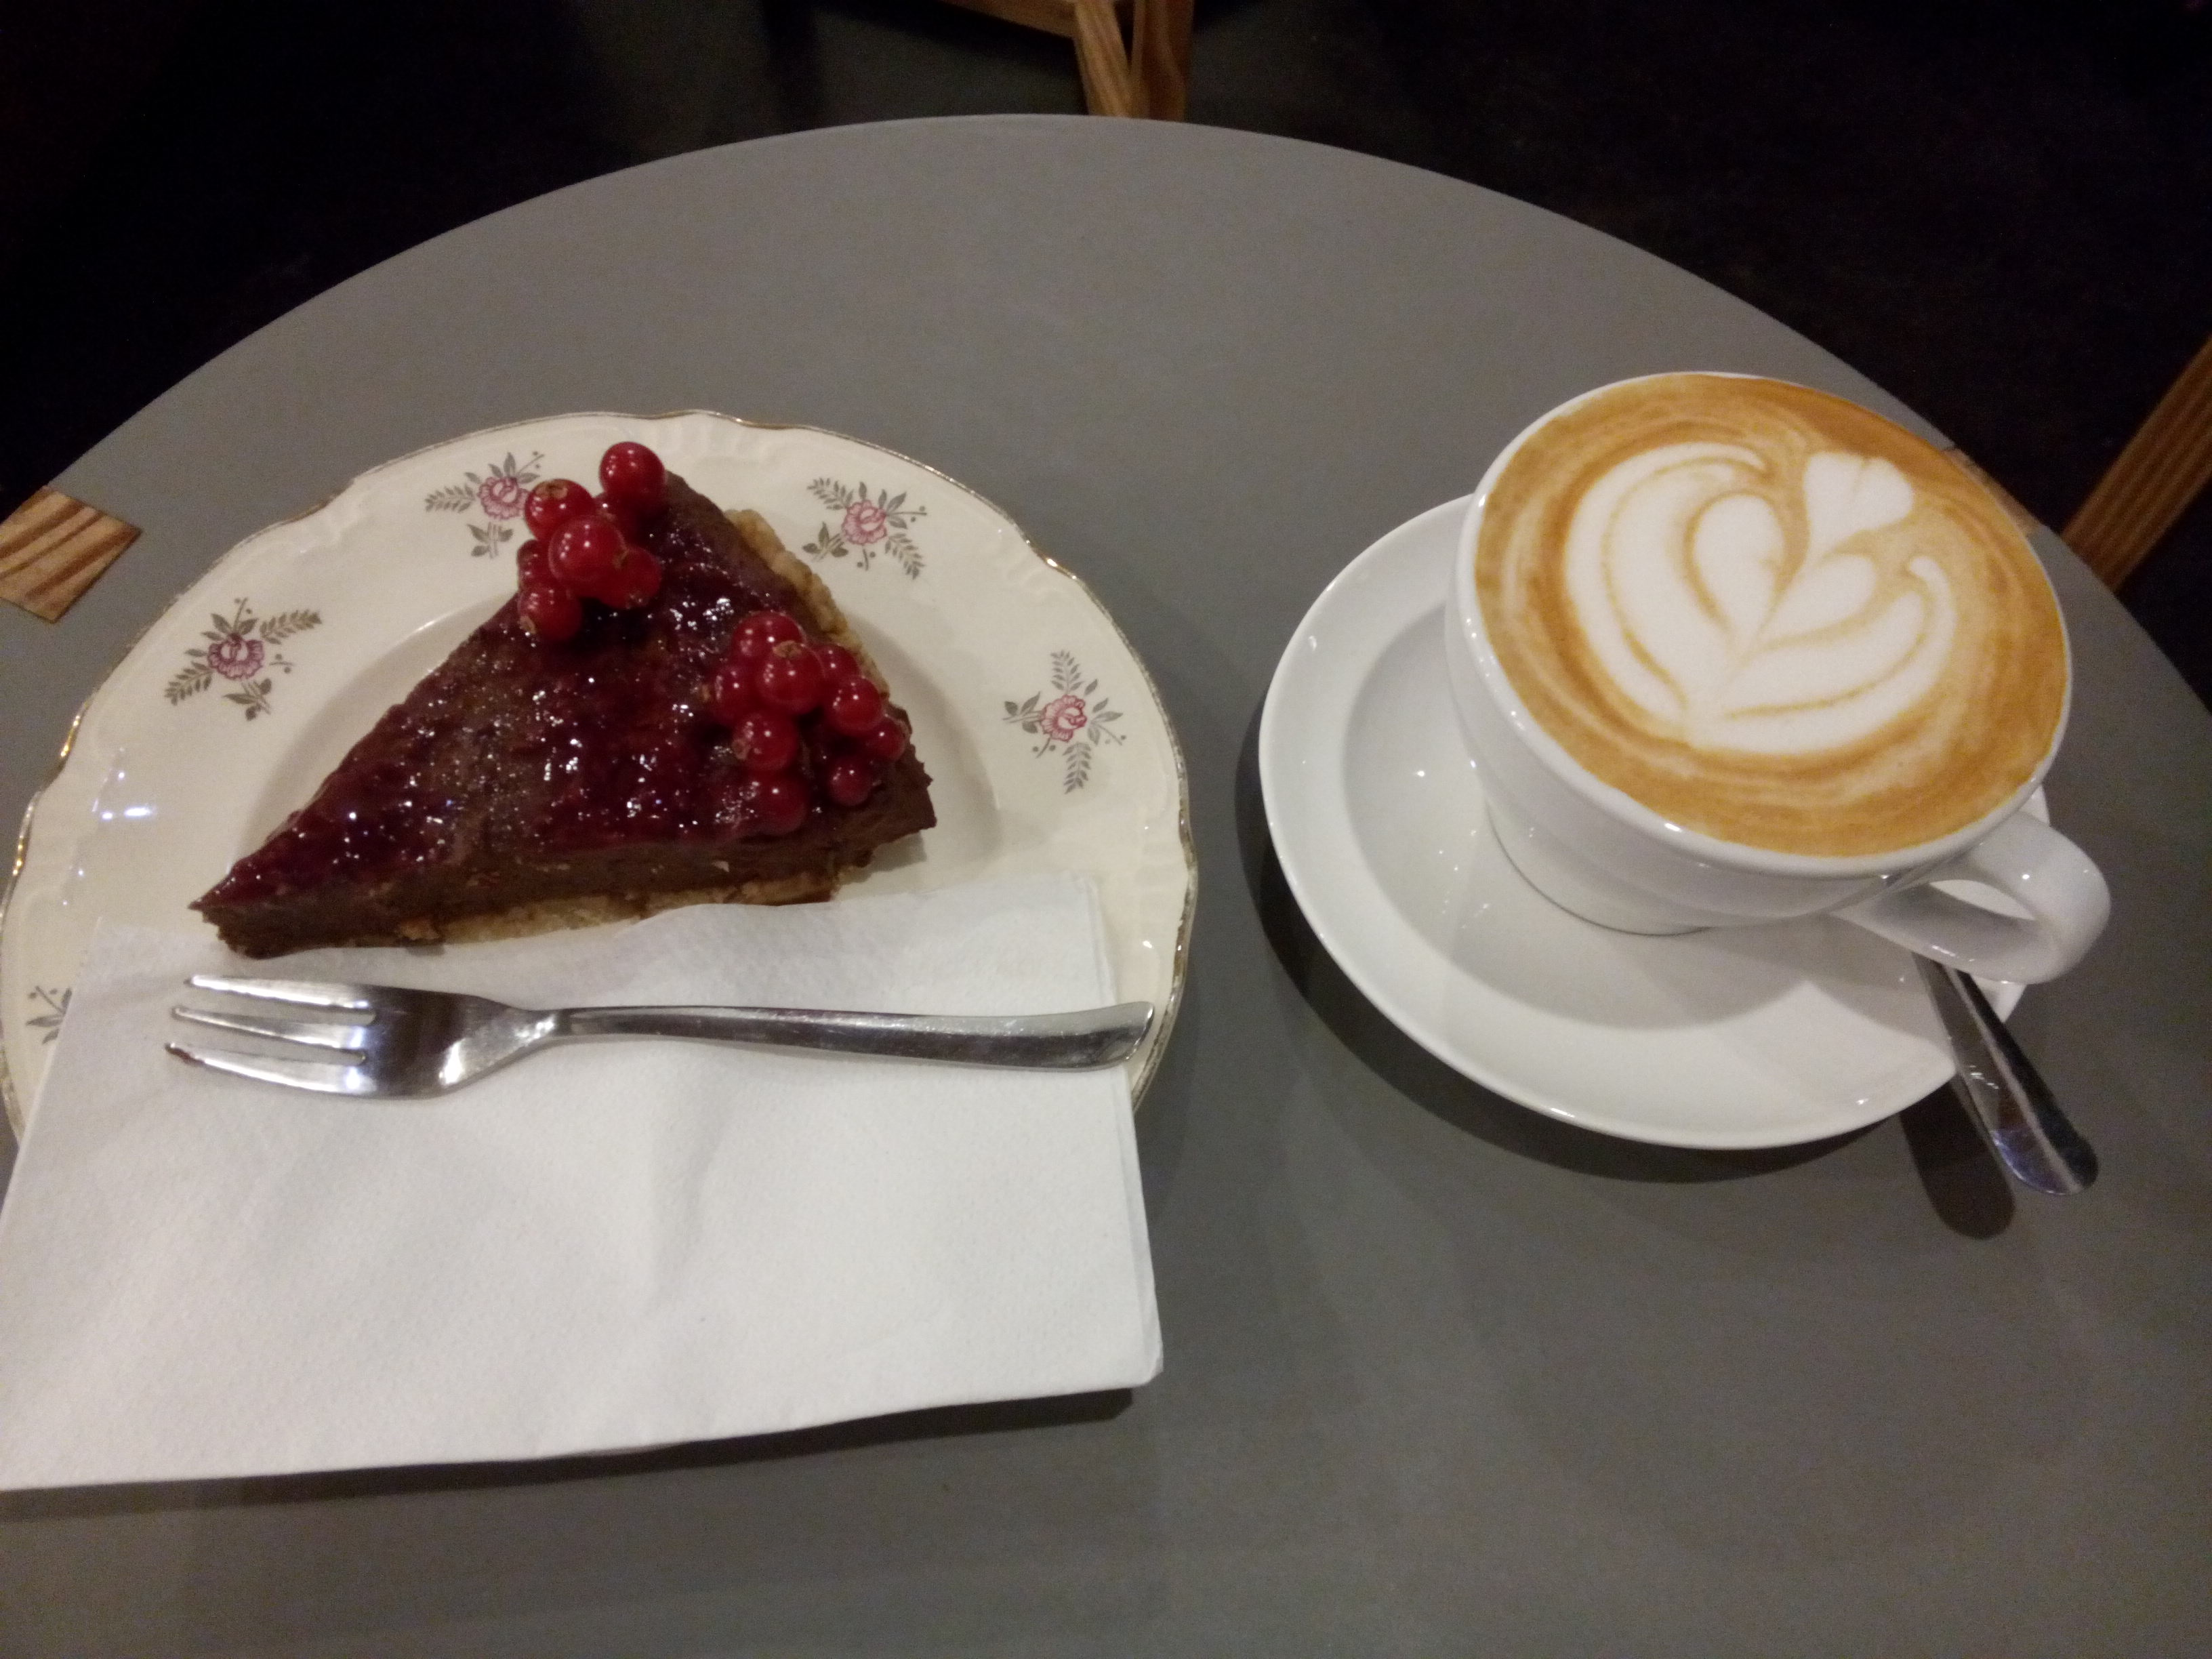 A chocolate pie on a plate, and a cup of foamy flat white coffee on a table